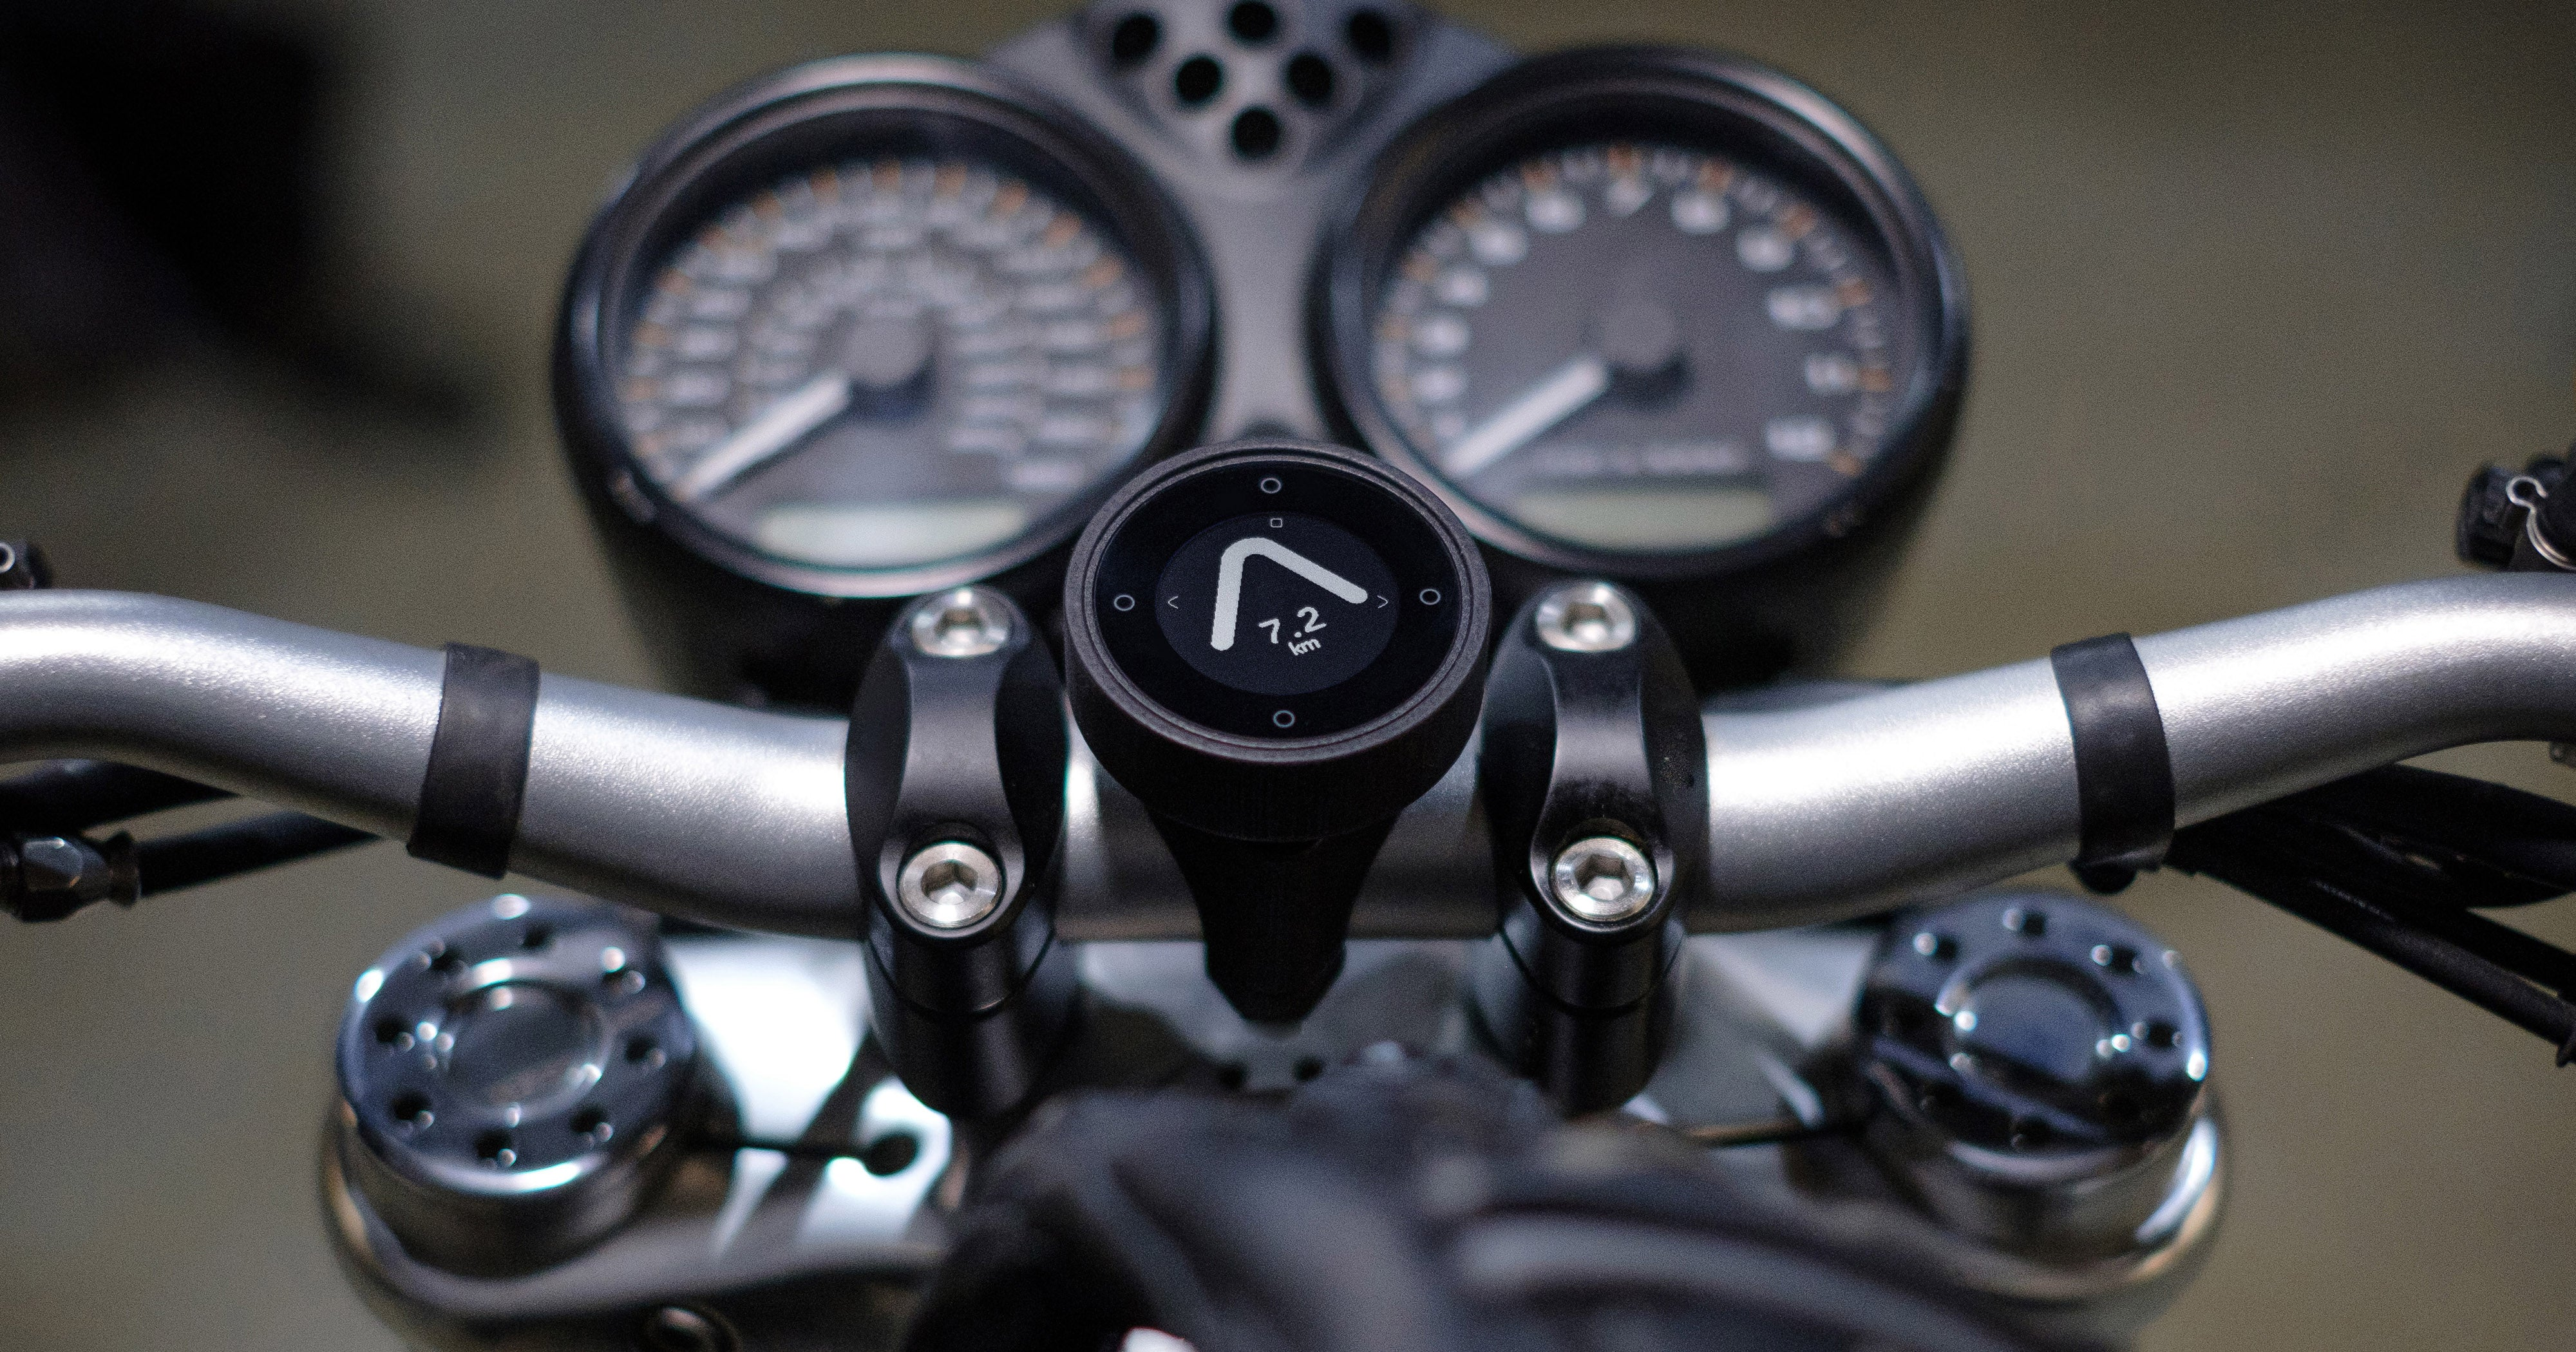 a motorcycle sat nav attached on the handlebars of a motorbike showing the direction